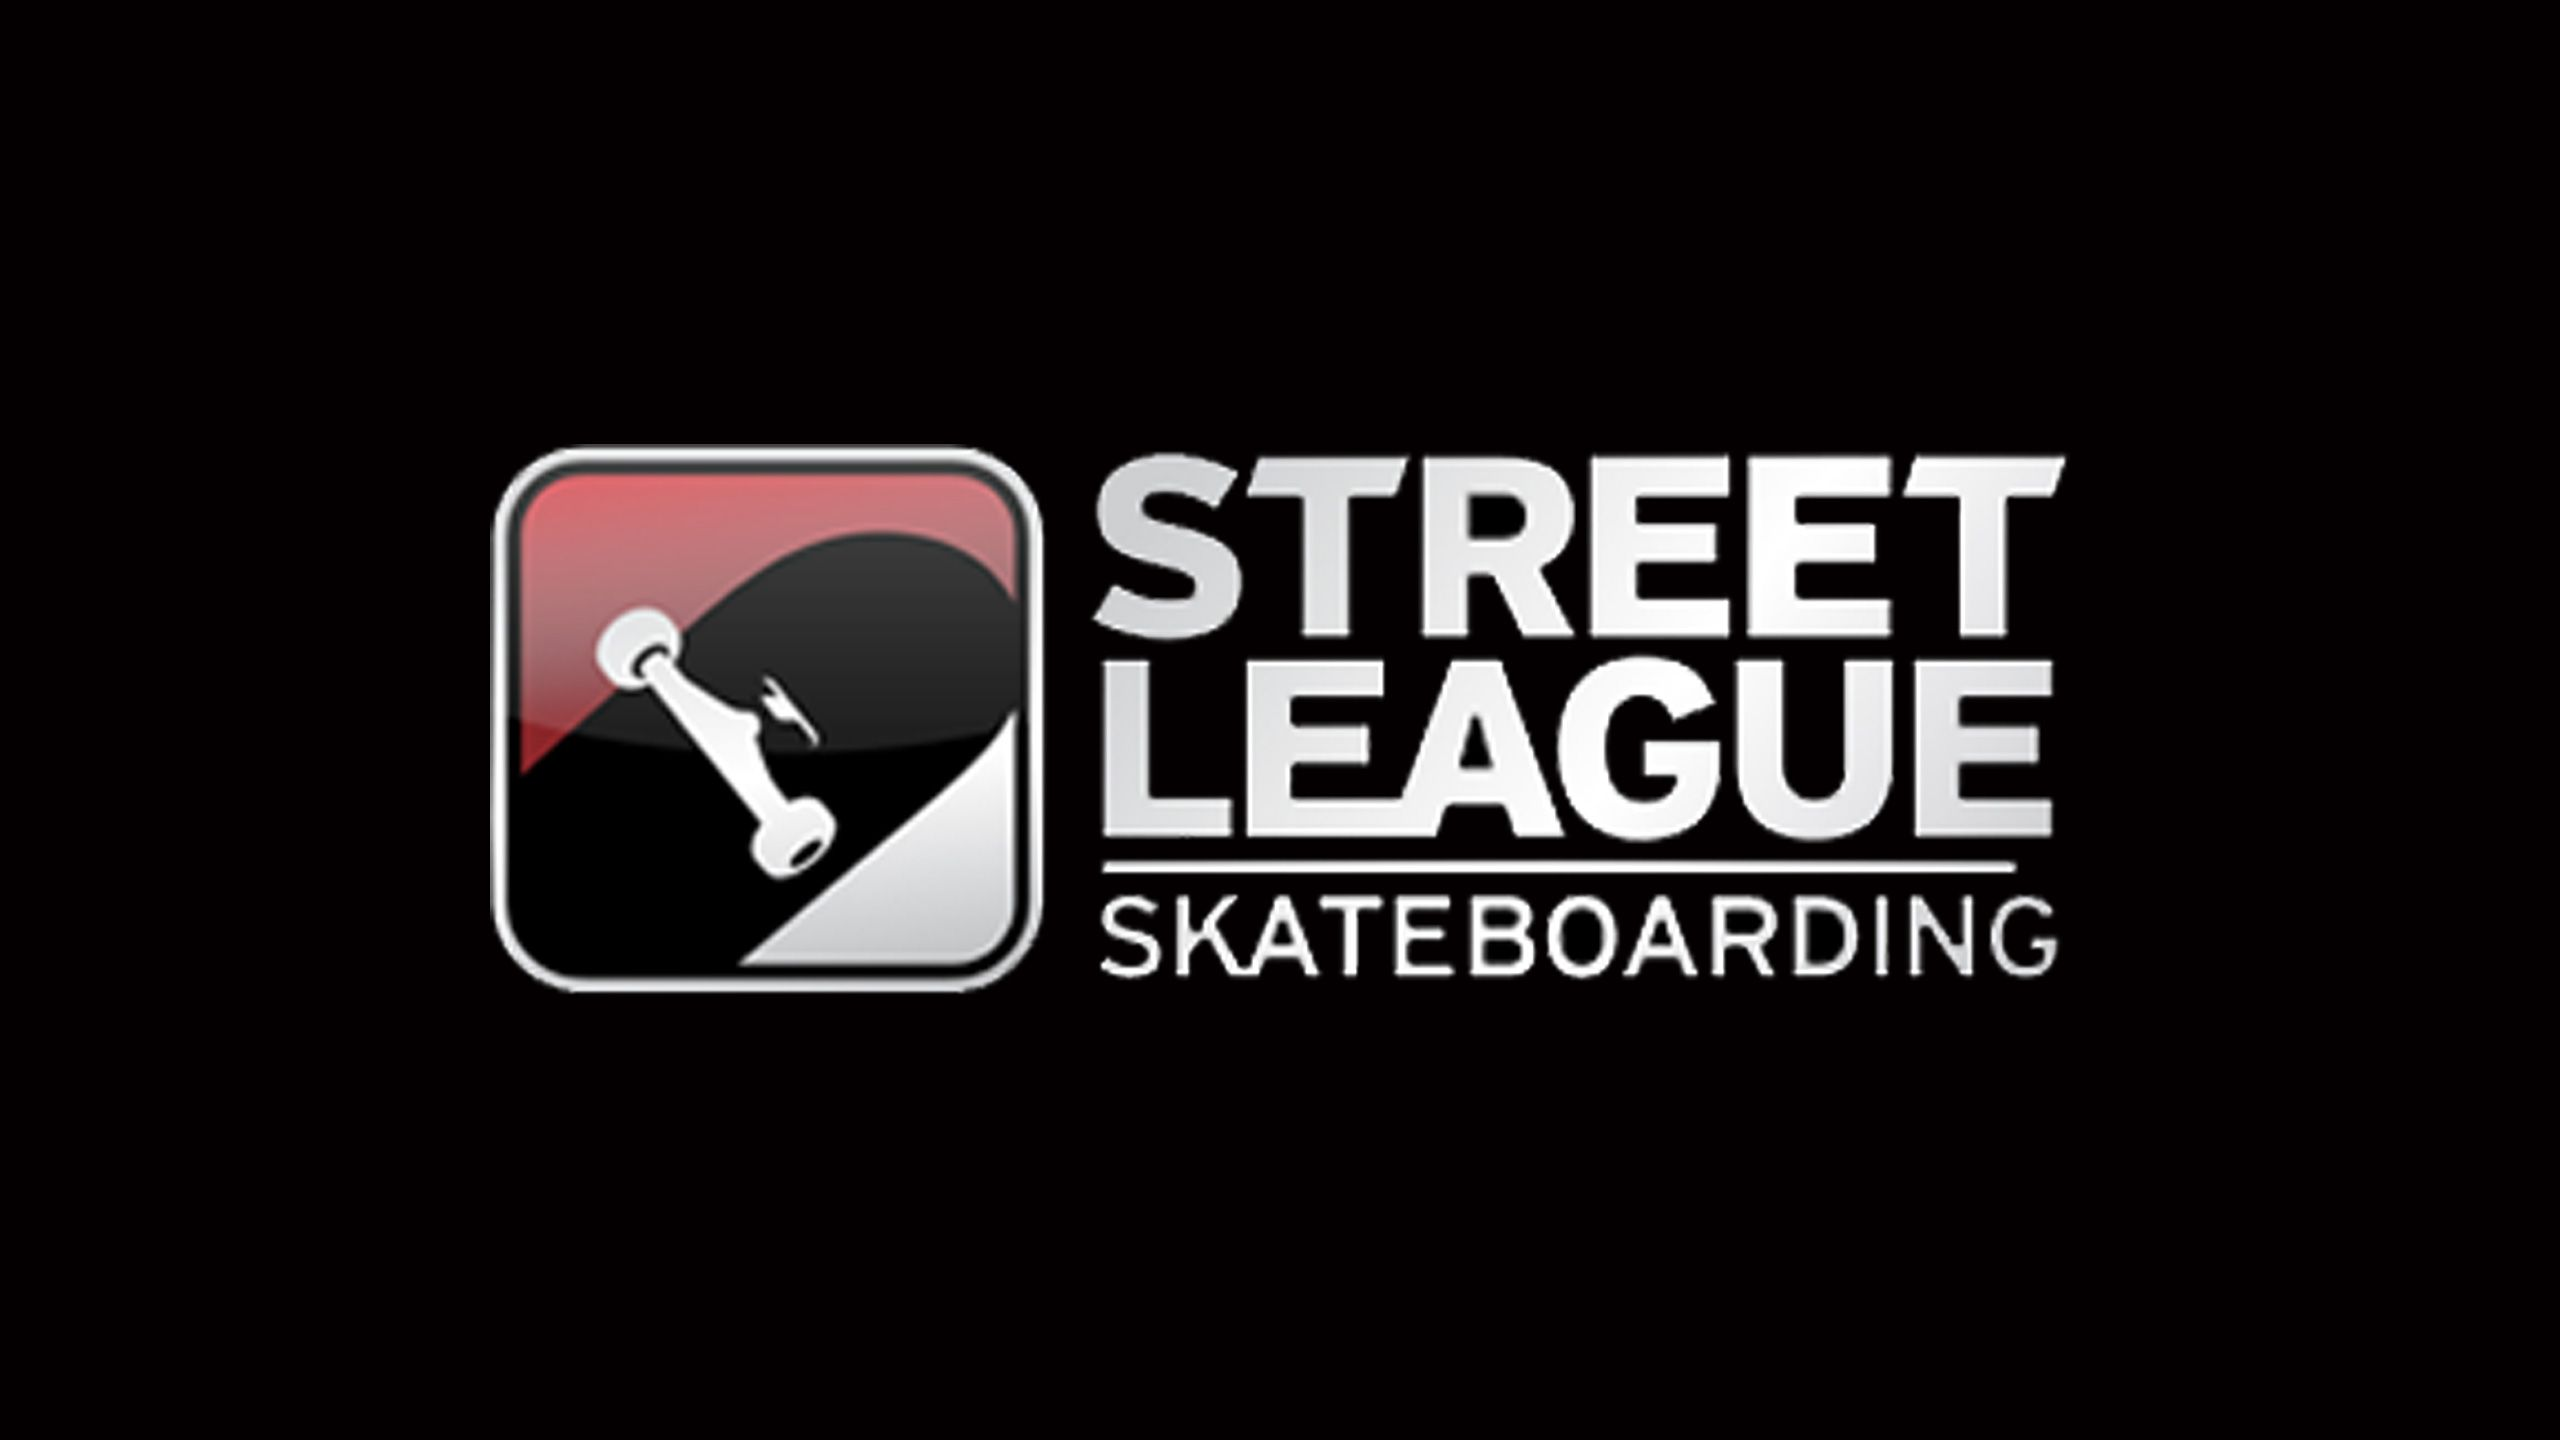 World of X Games: Street League Skateboarding Stop #1